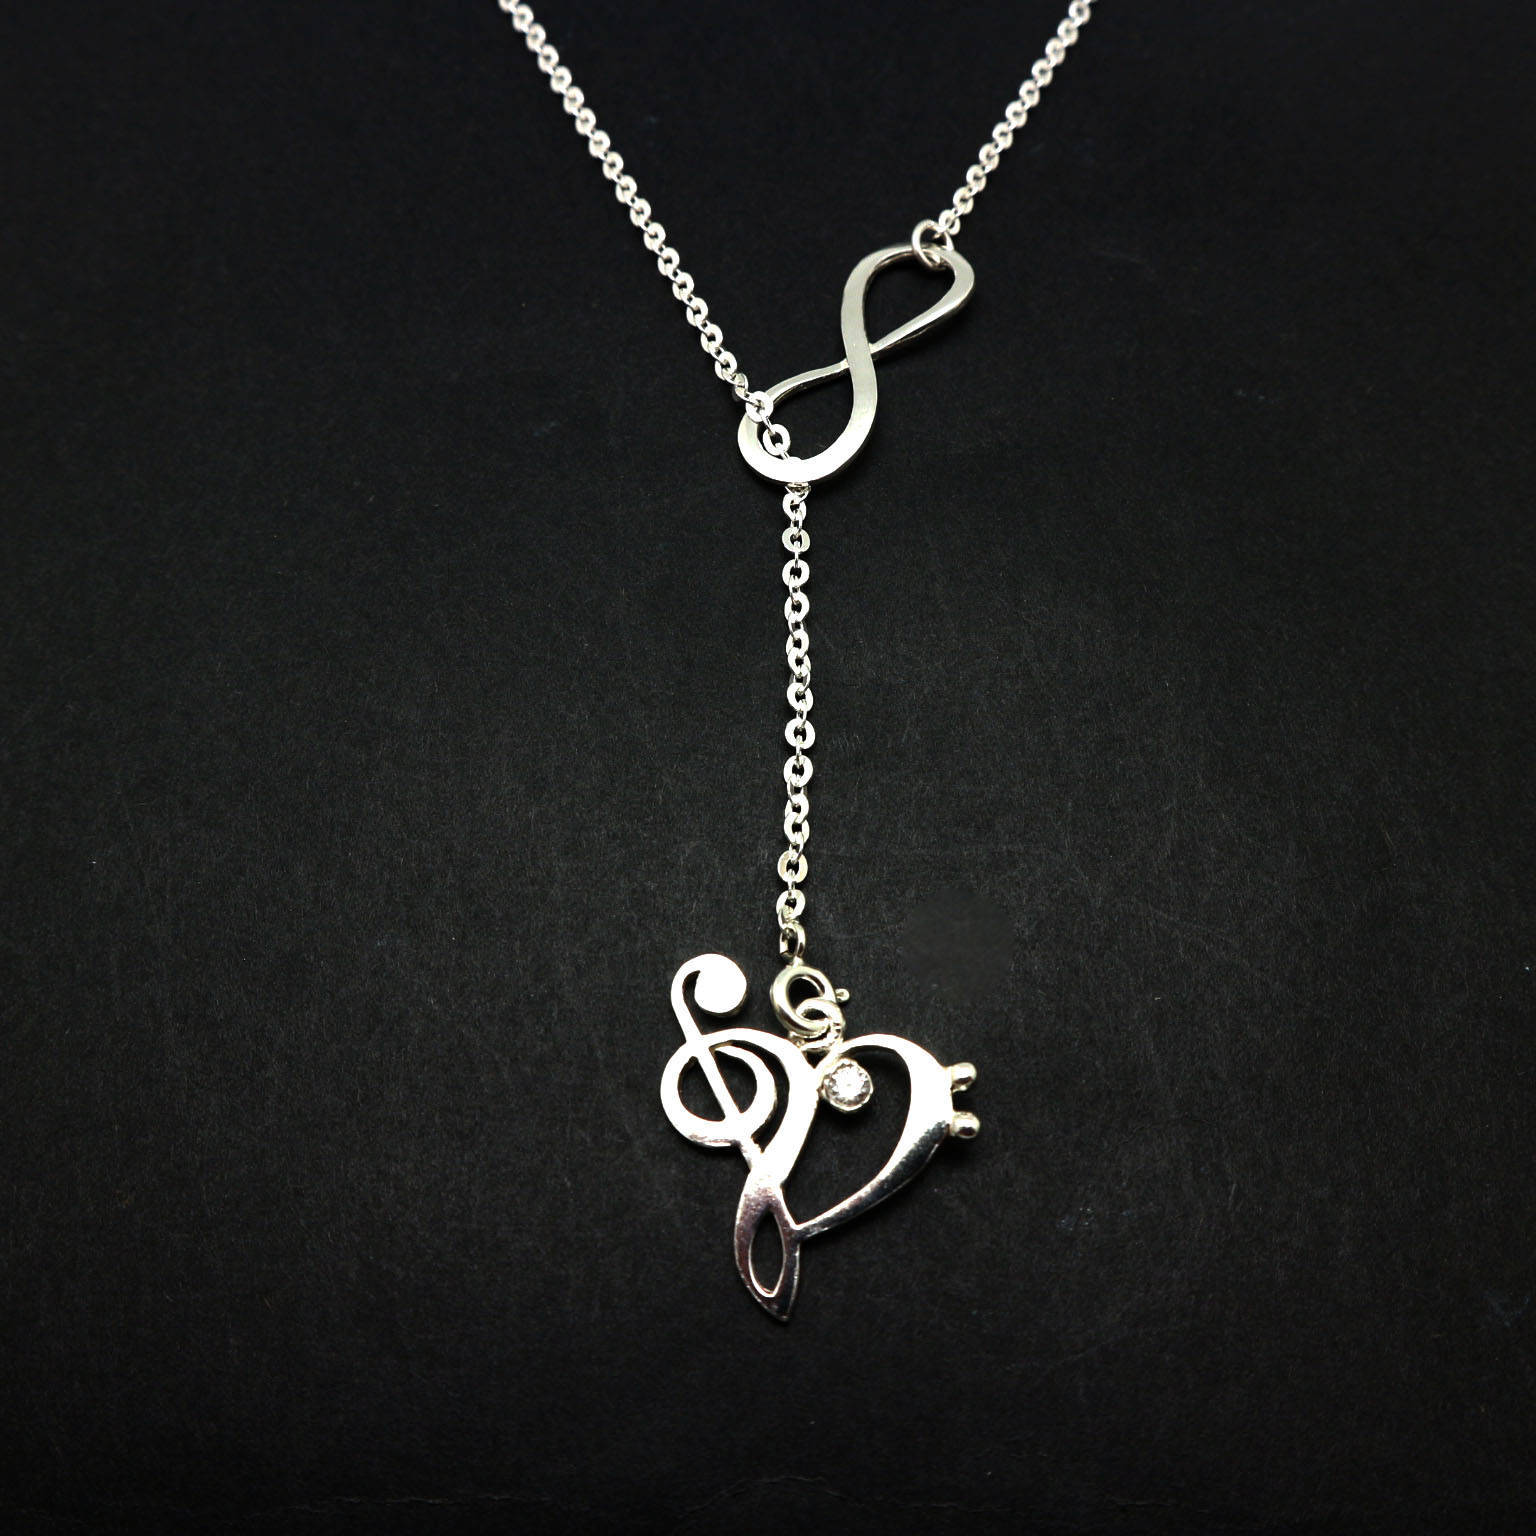 Primary image for Handmade 925 Sterling Silver Double Infinity Music Note Lariat Y Necklace